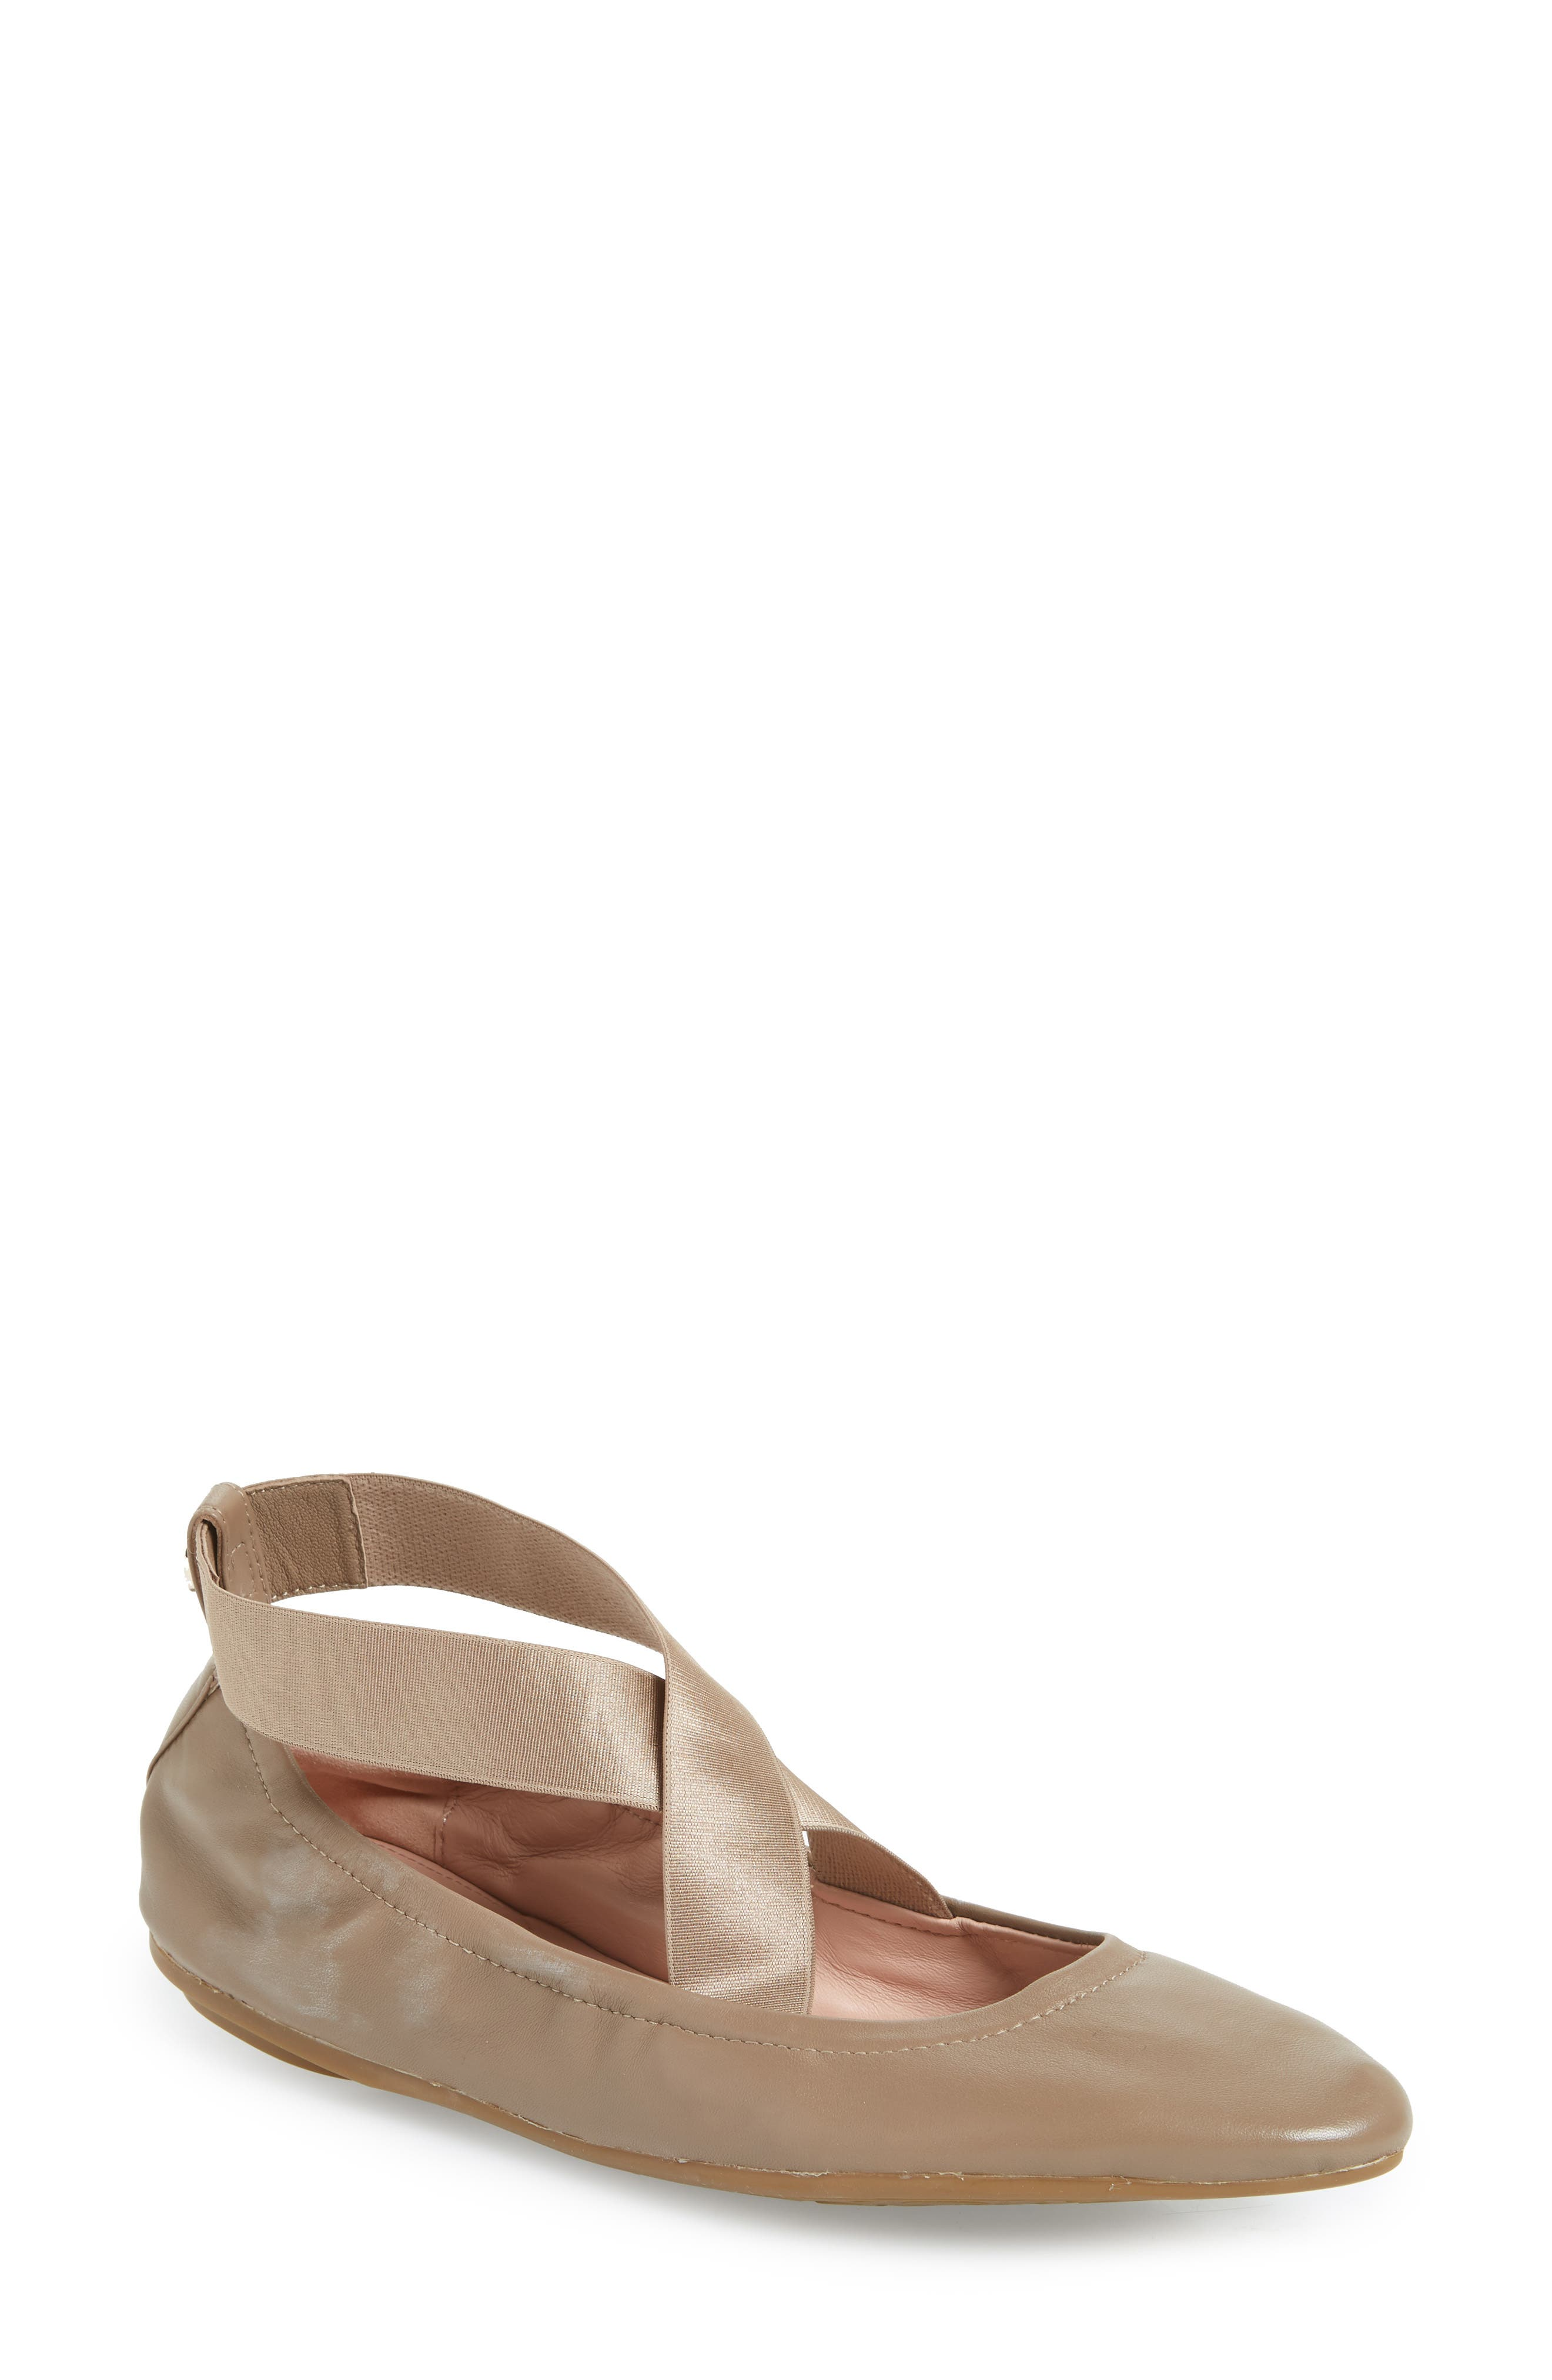 Edina Strappy Ballet Flat,                         Main,                         color, 260